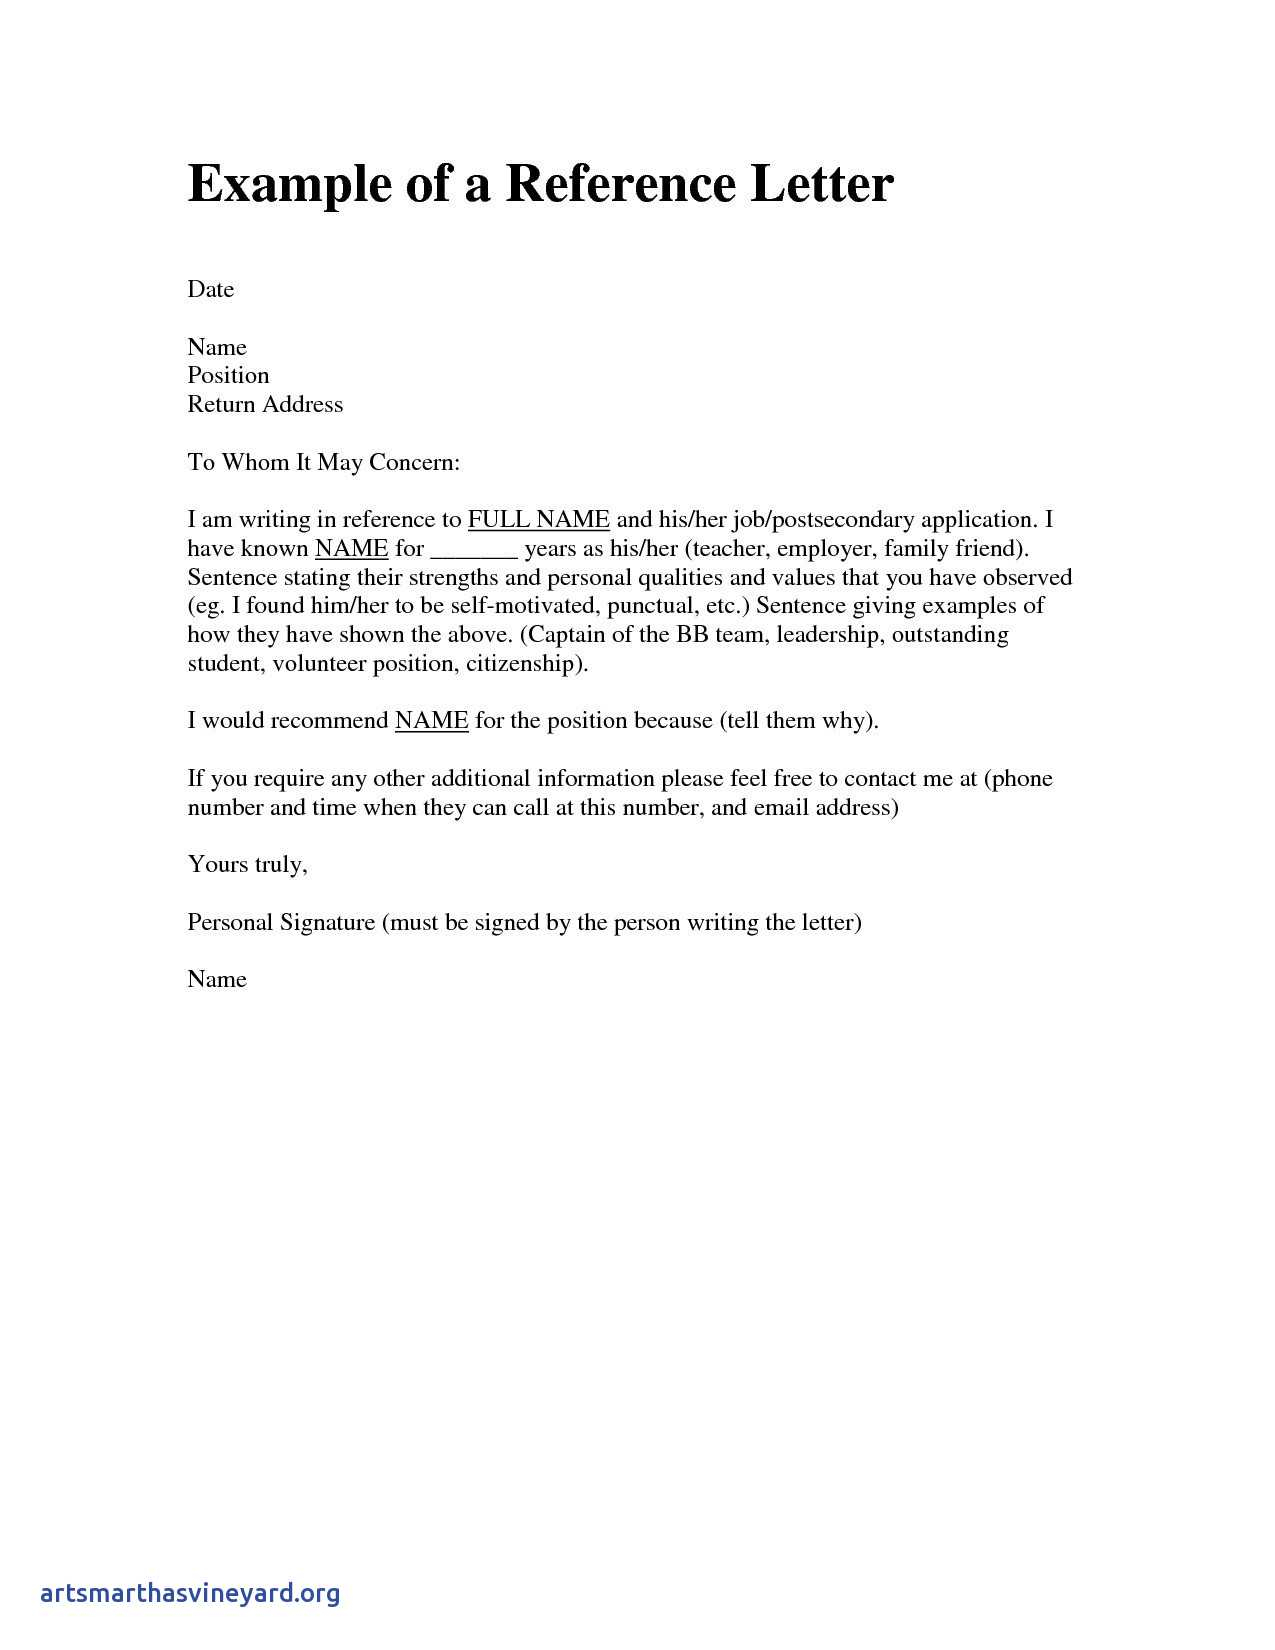 Reference Letter for Friend Character Template - Luxury Character Reference Letter for A Friend Sample Scheme Free